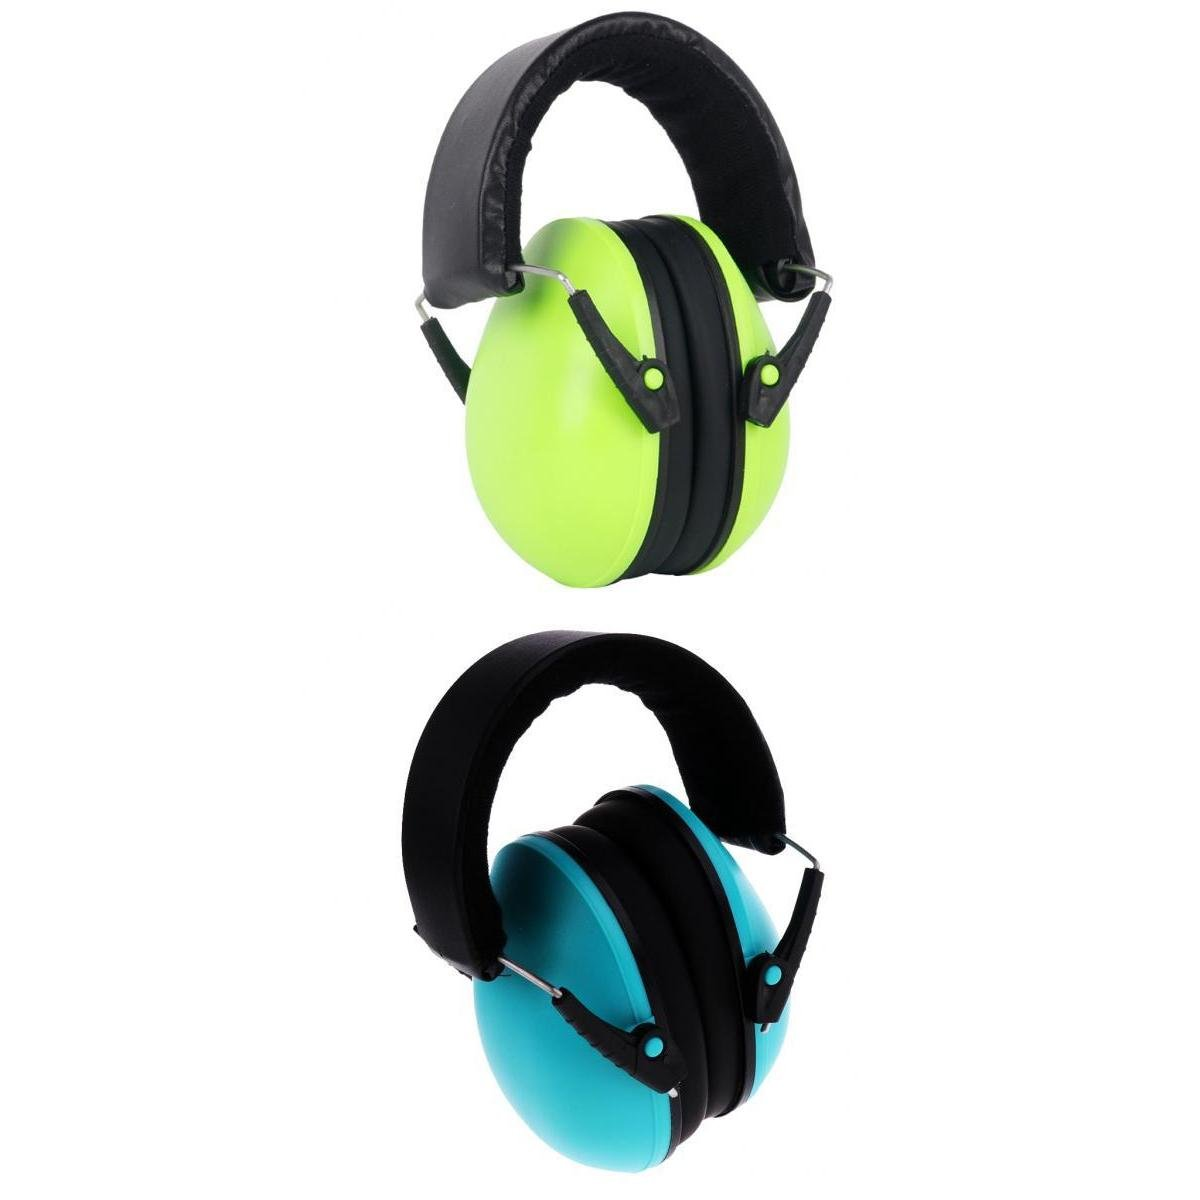 MagiDeal 2xBaby Ear Defenders Toddler Earmuffs Kids Child Hearing Protection Sound non-brand